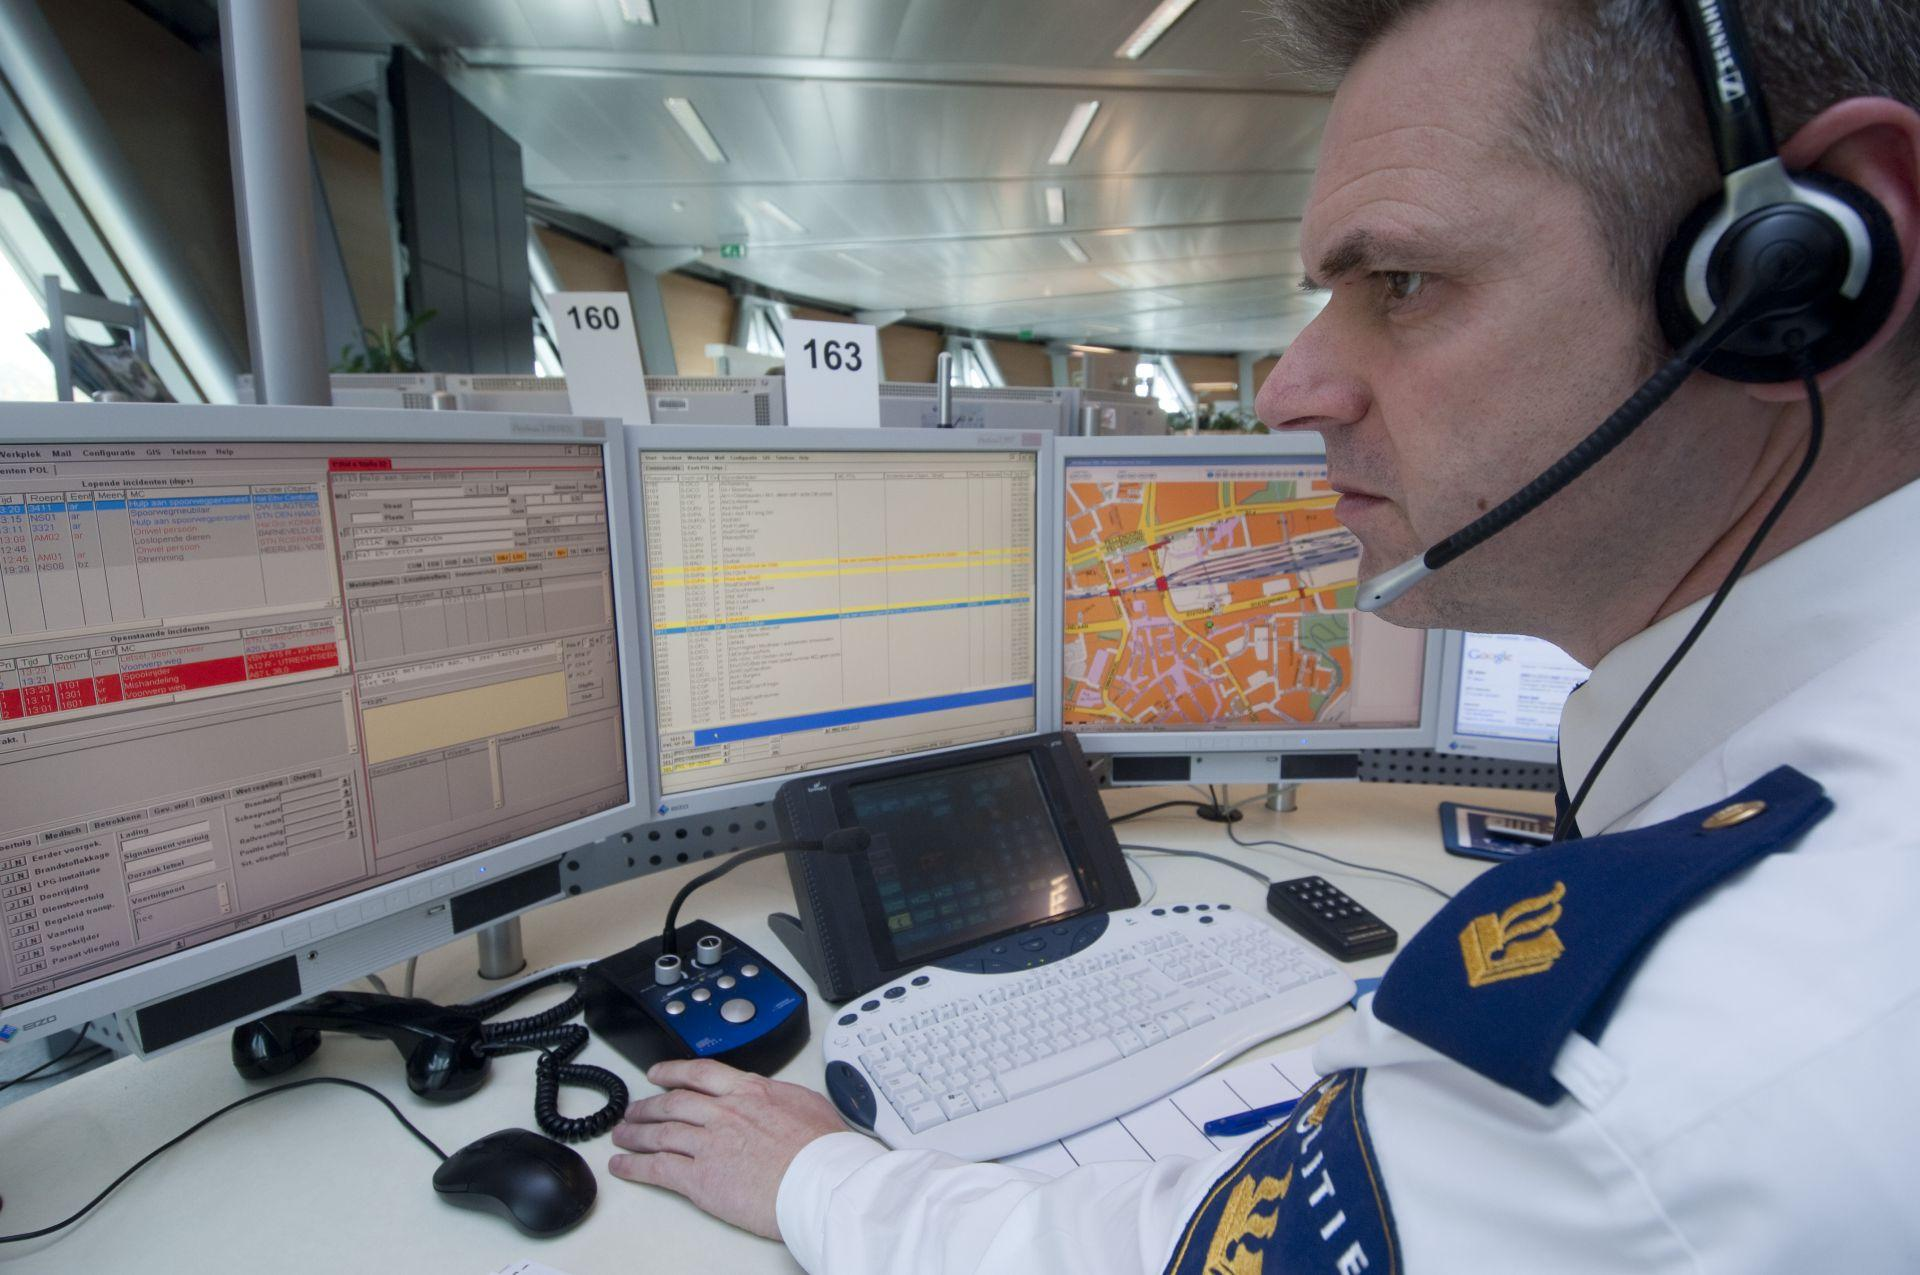 Market Consultation for New Dutch Integrated Control Room System